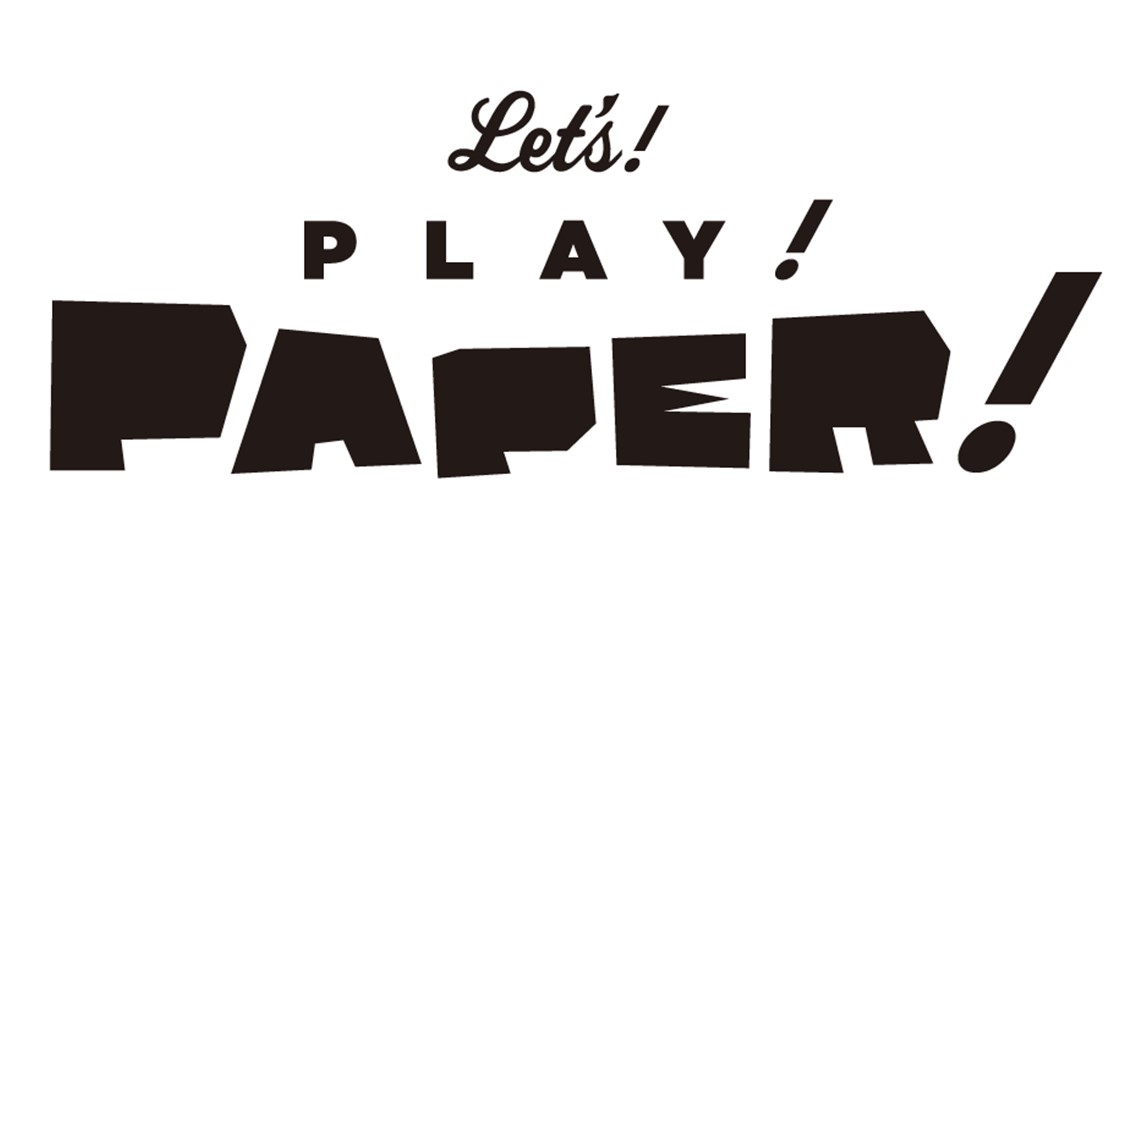 Let's! PLAY! PAPER!